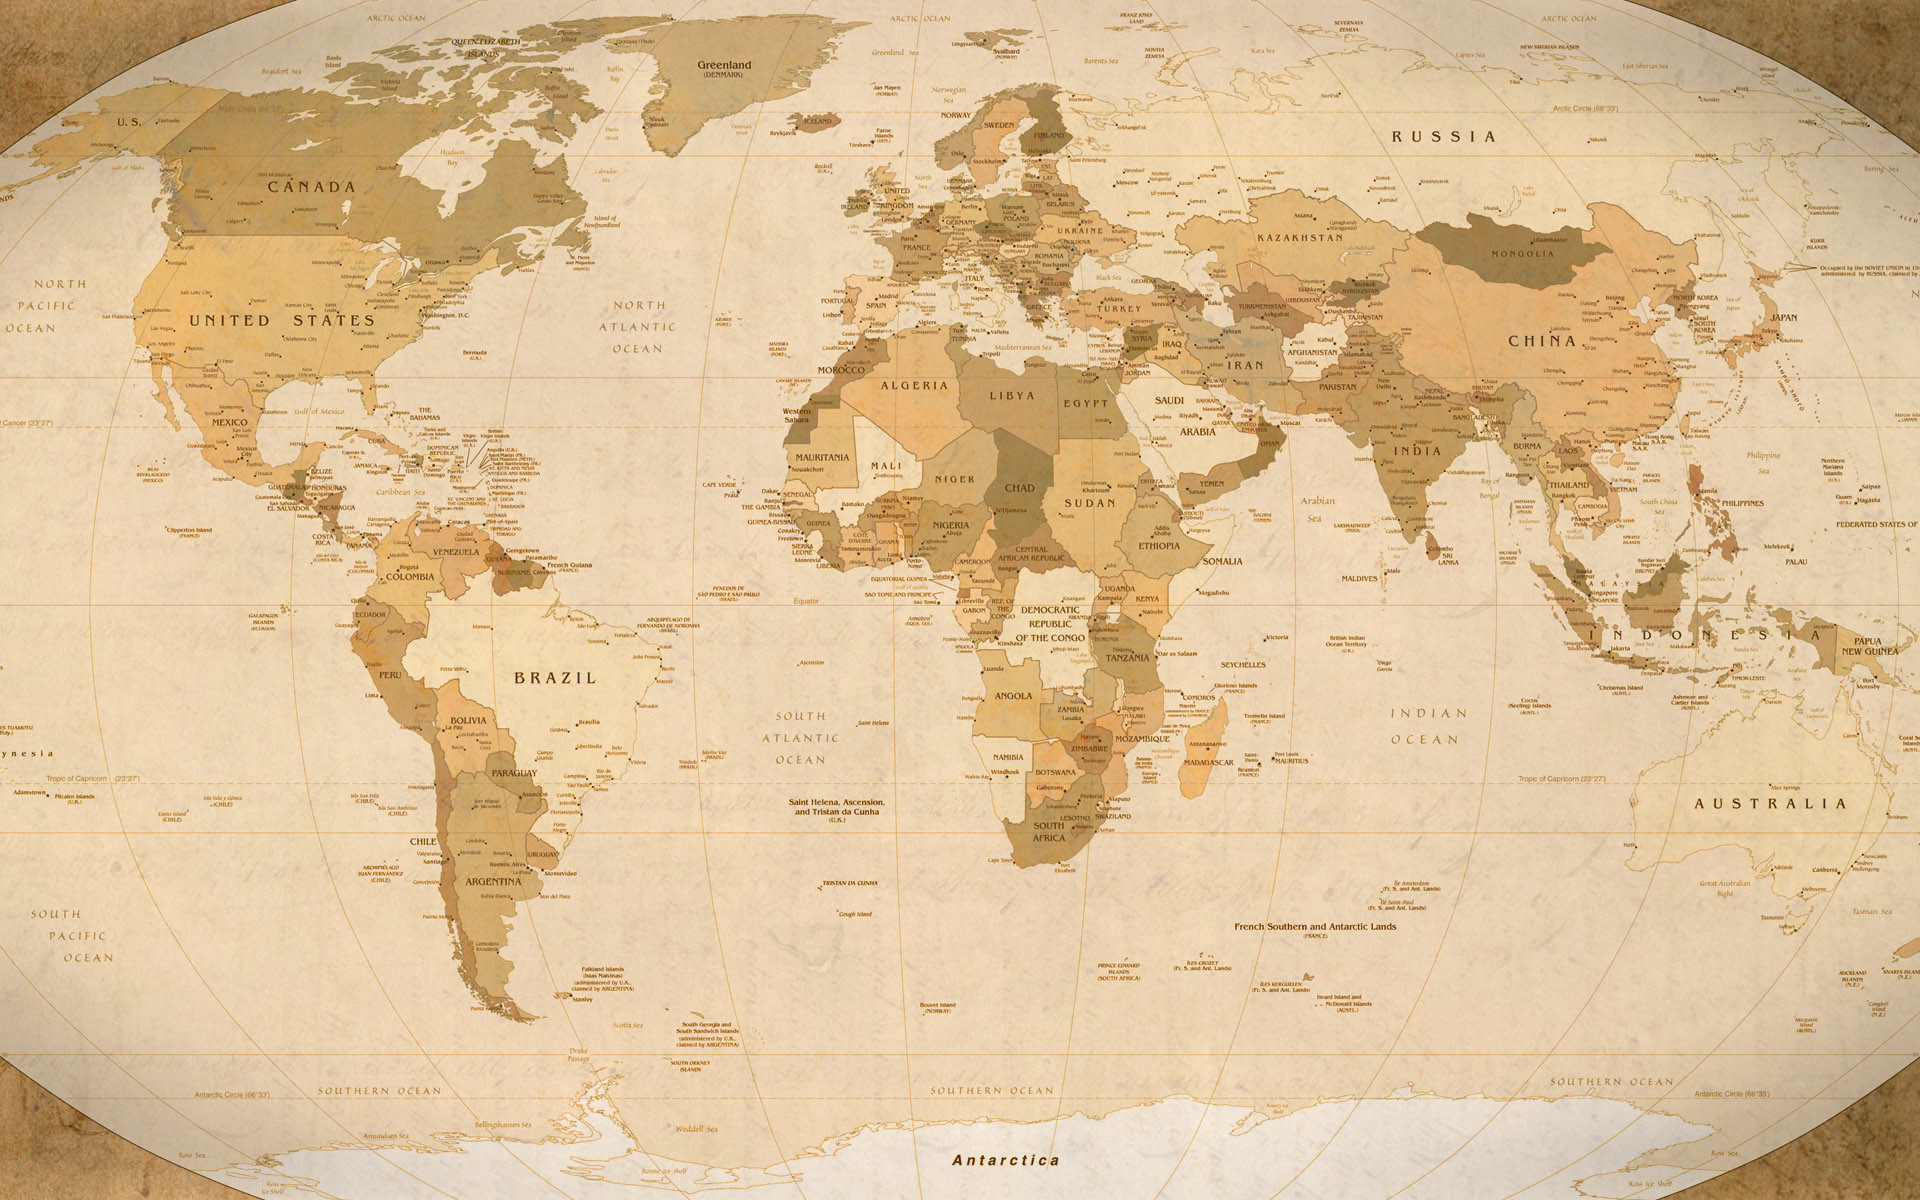 World map desktop wallpaper hd 70 images 2499x1499 download full size gumiabroncs Images